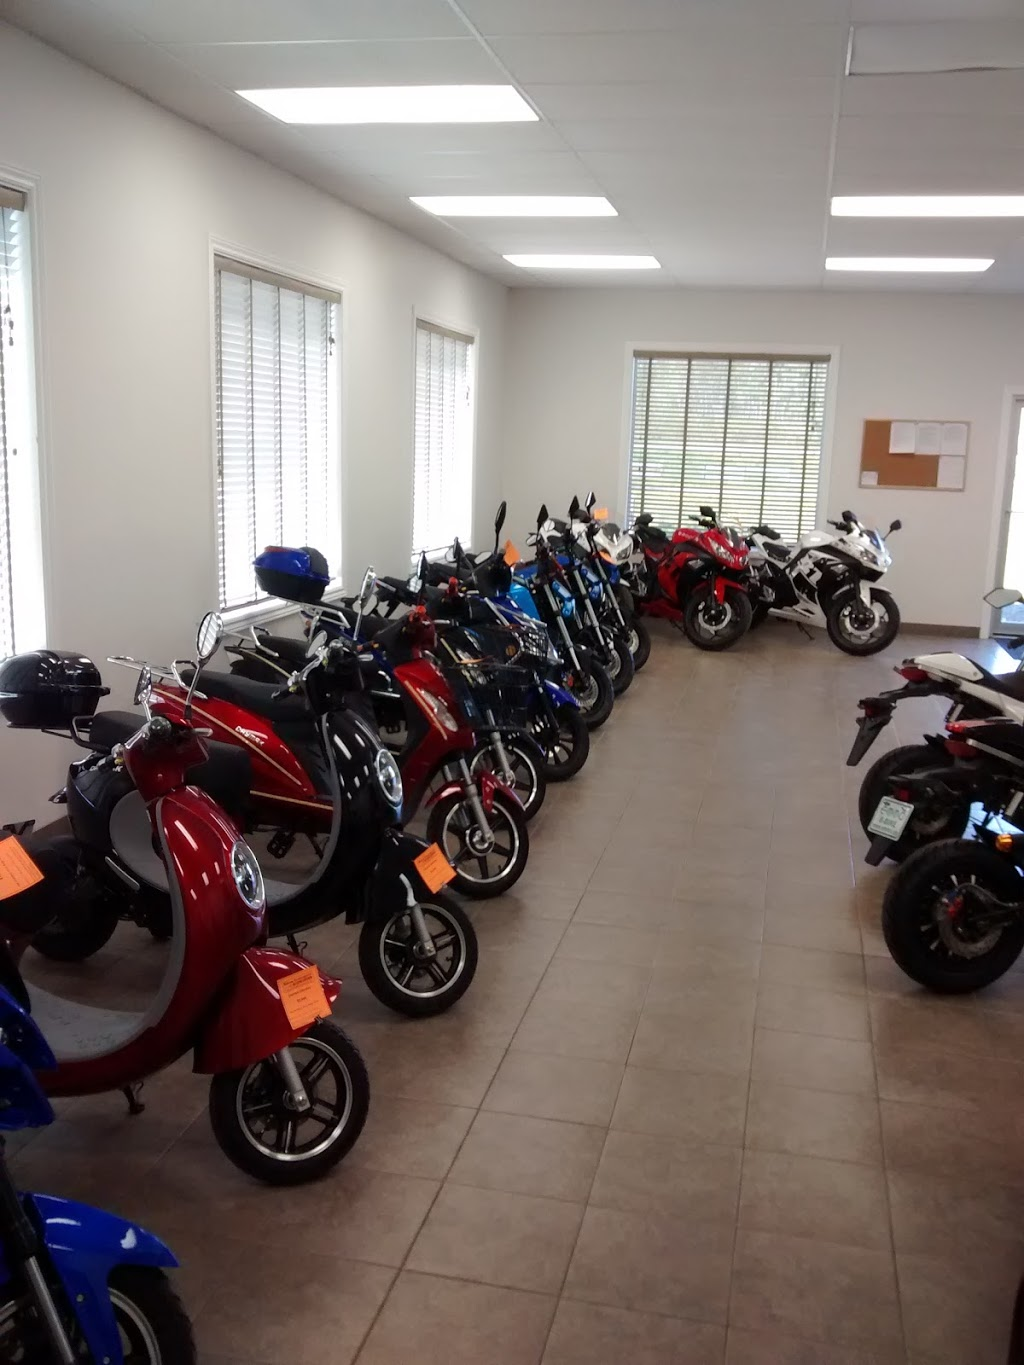 Edrive Powersports | bicycle store | 109 Old Mill Rd, Shediac Cape, NB E4P 3C4, Canada | 5065324320 OR +1 506-532-4320